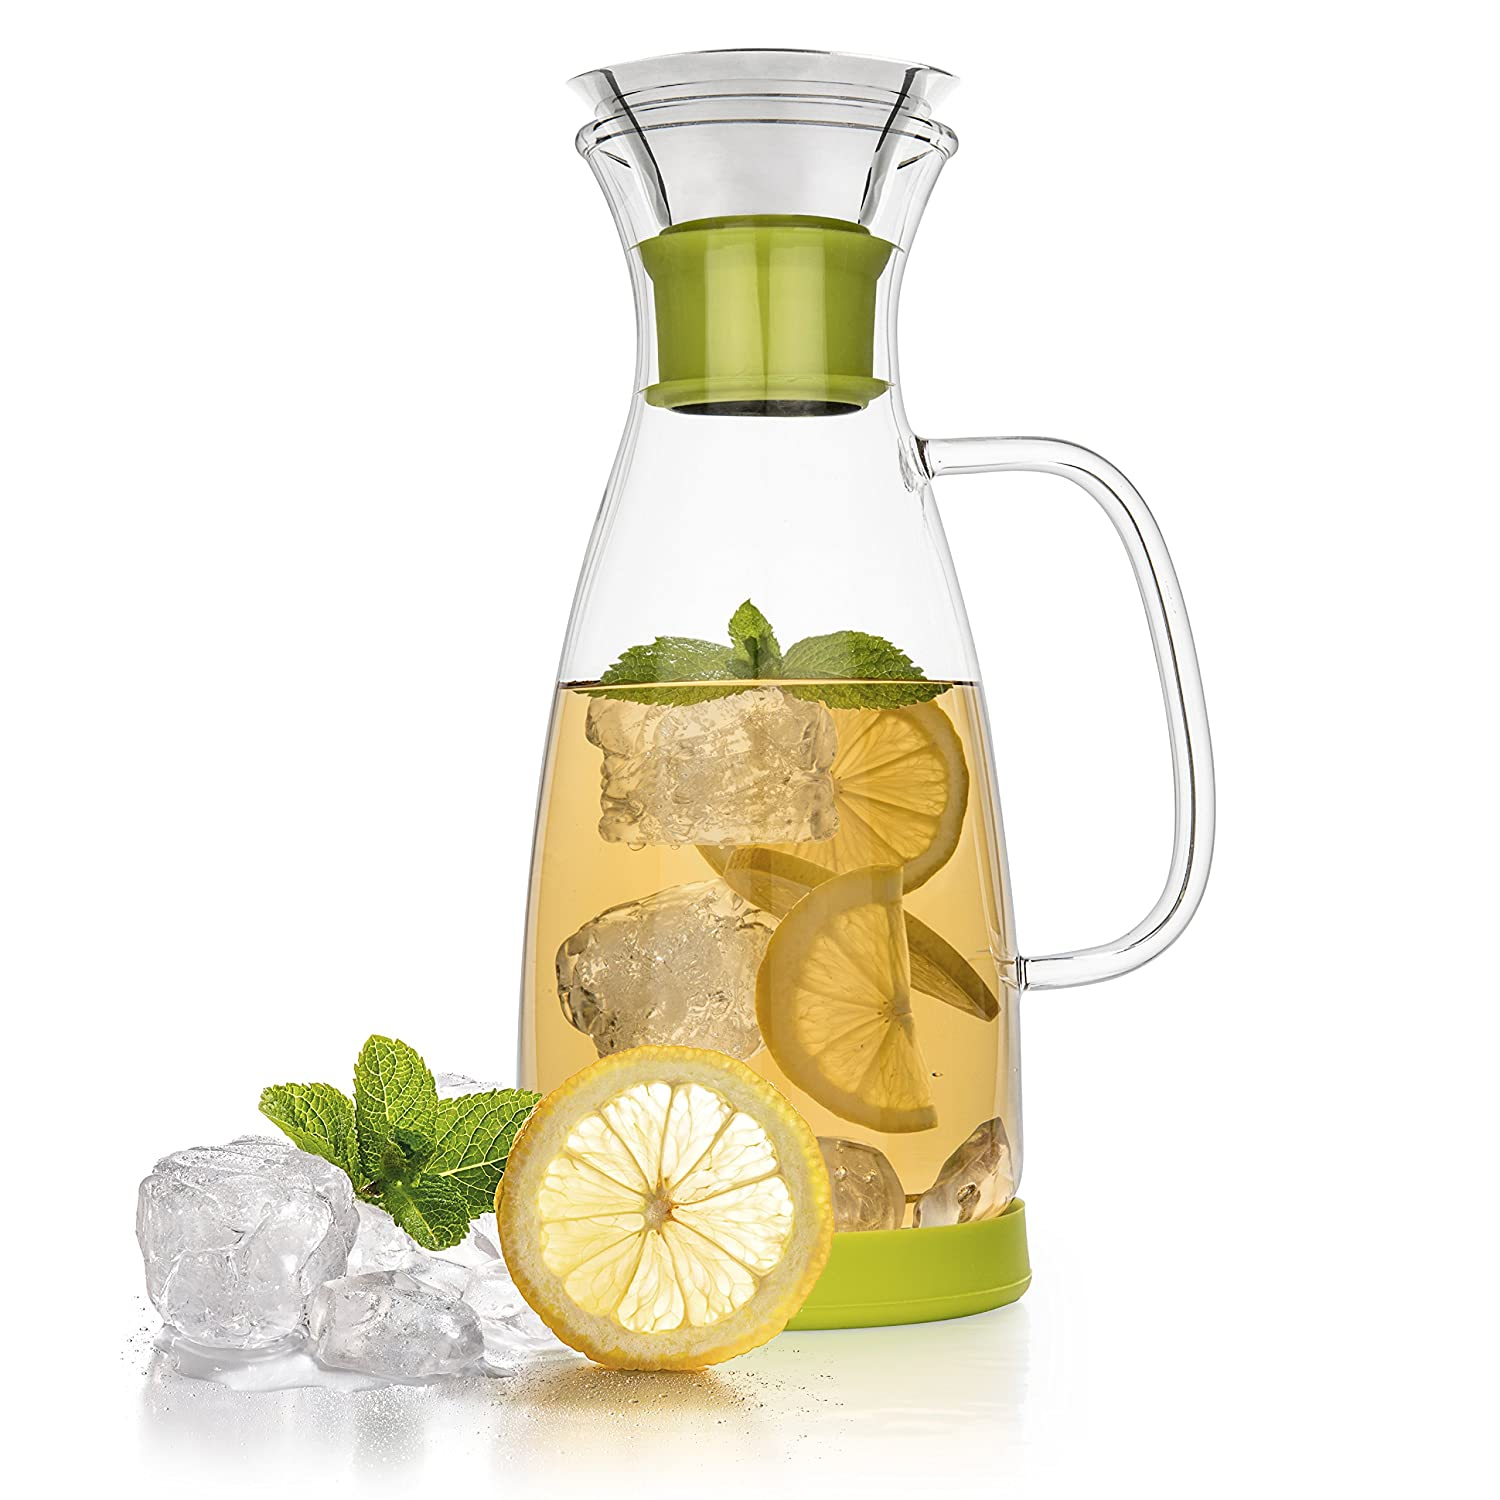 Tealyra - Glass Carafe - 1200ml - Drip-free - Borosilicate Water Pitcher Jug Infuser - Hot and Iced Tea Maker - Coffee Juice Beverage - Decanting and Serving Wine - Lime Base and Lid - 40-ounce COMINHKPR140860